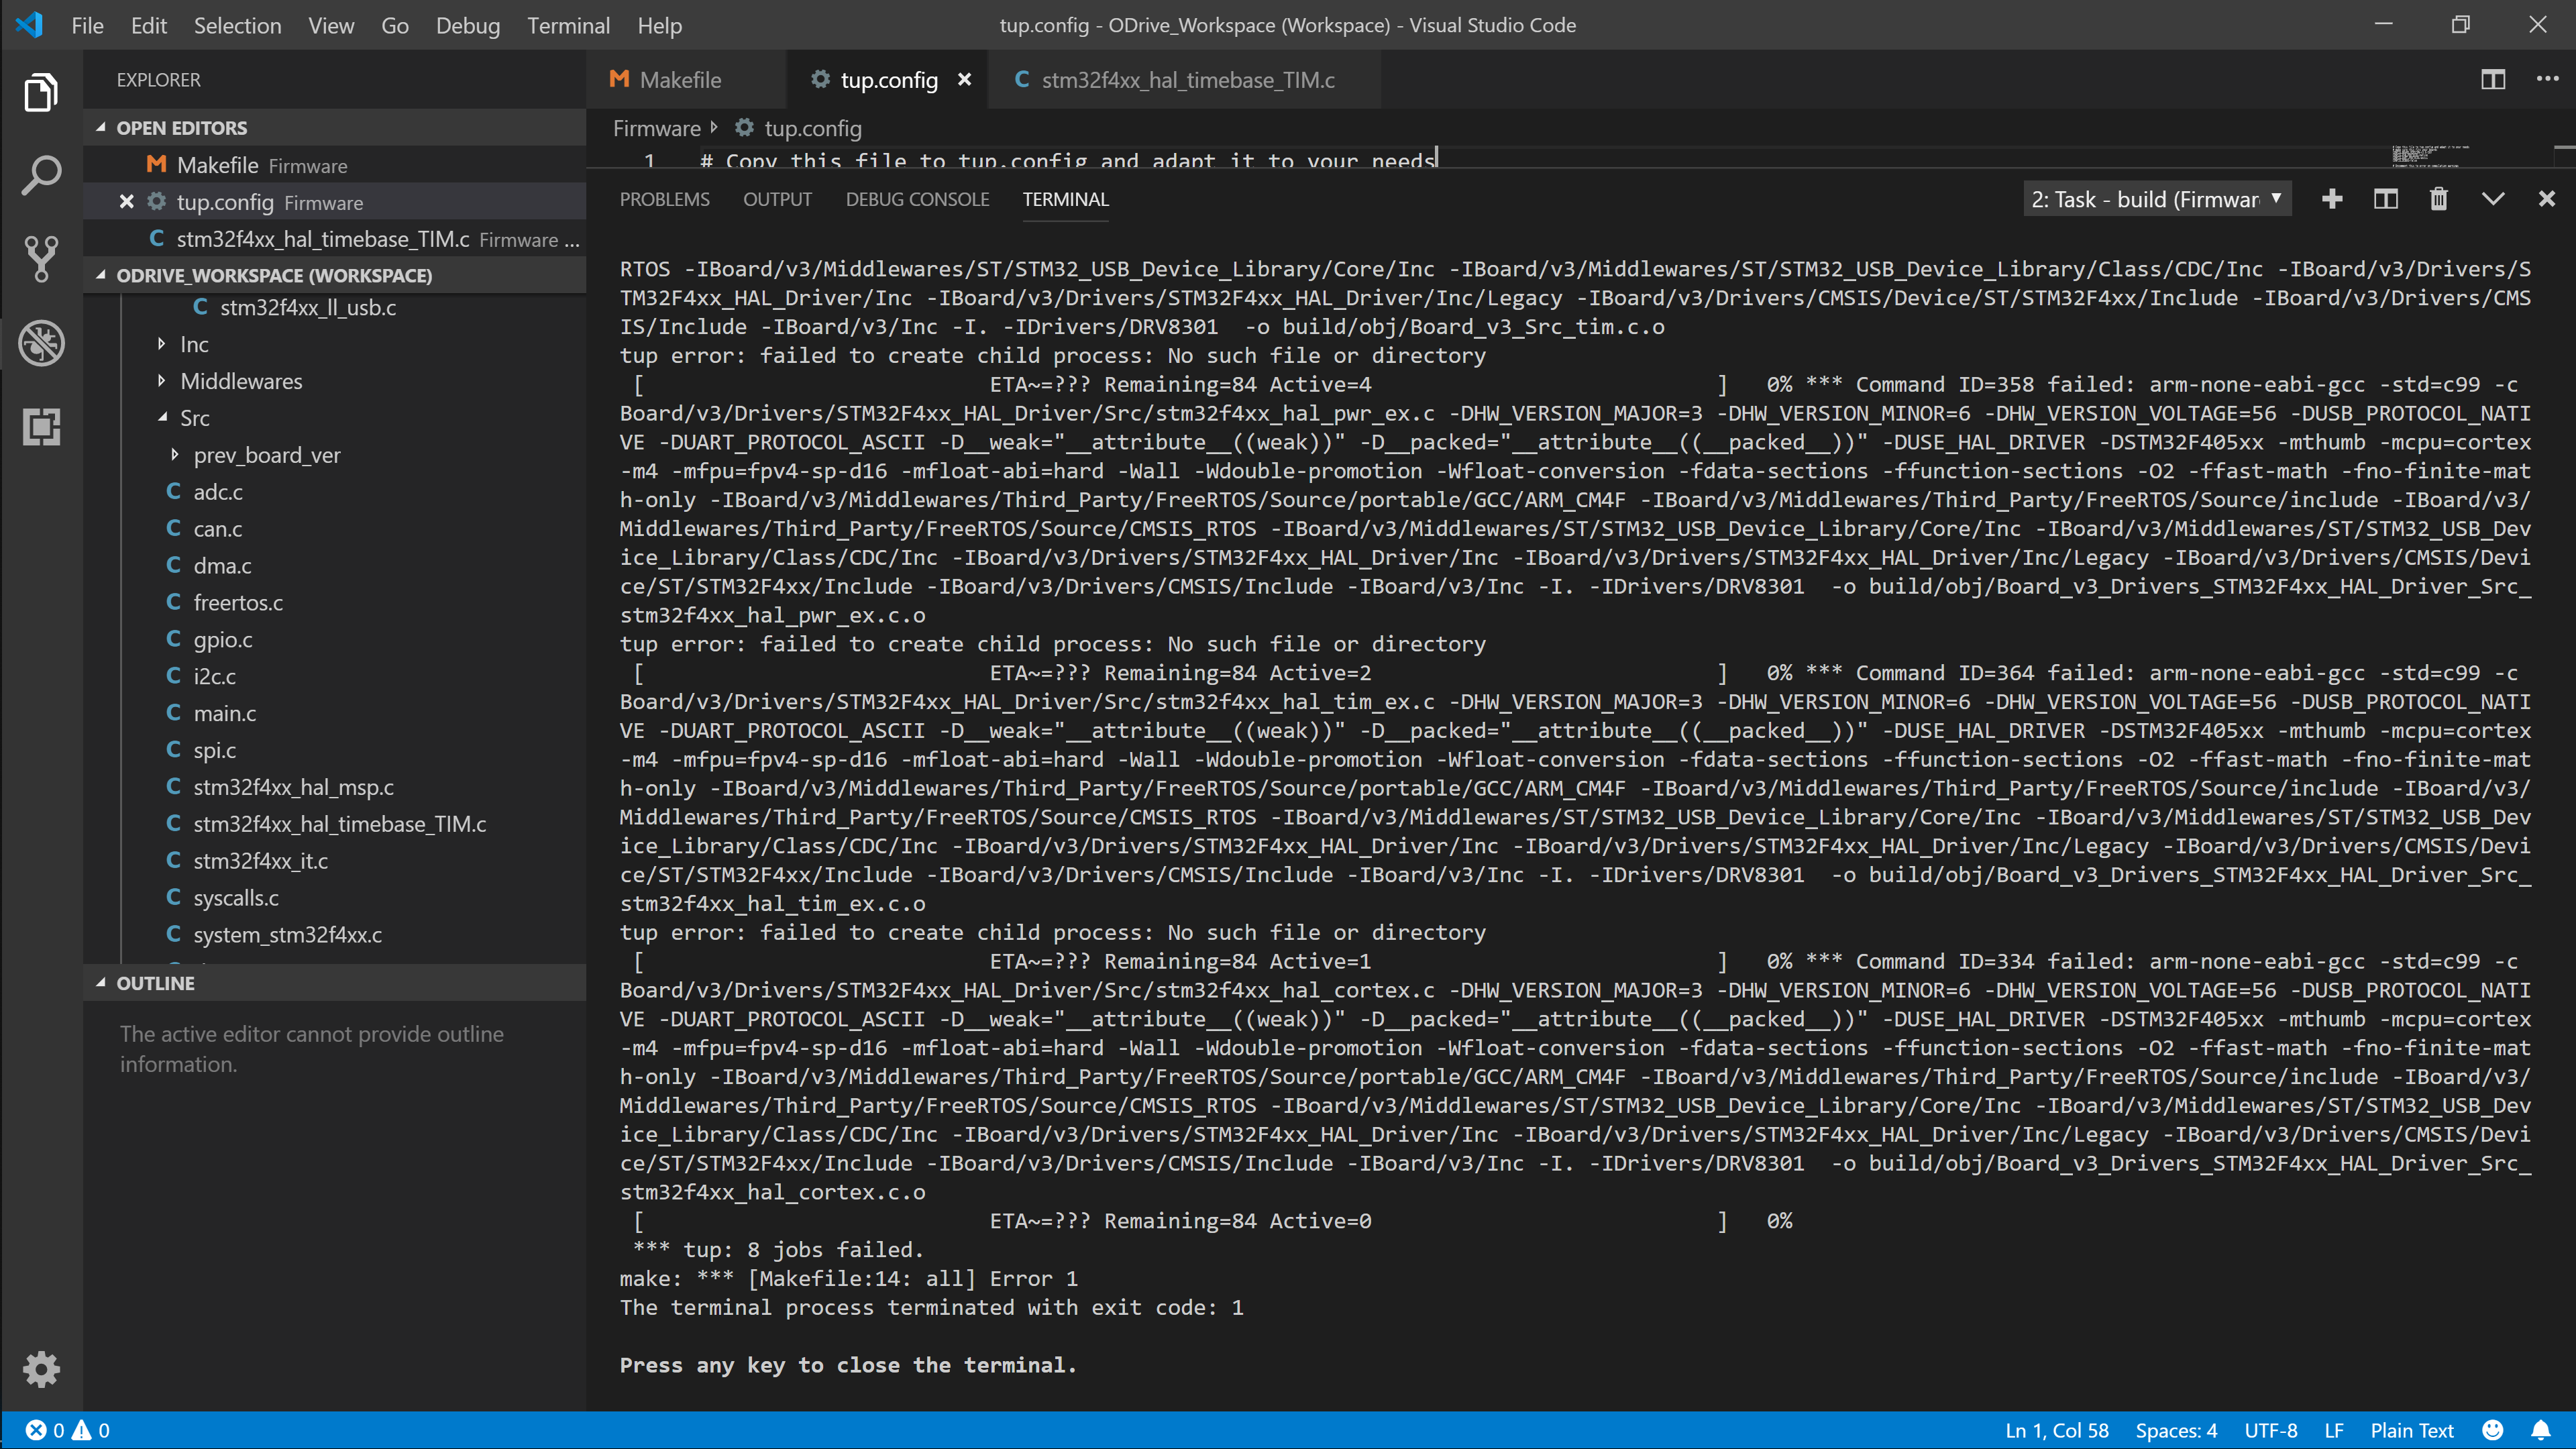 Issues with Compiling Firmware in Windows 10, VSCode - Support